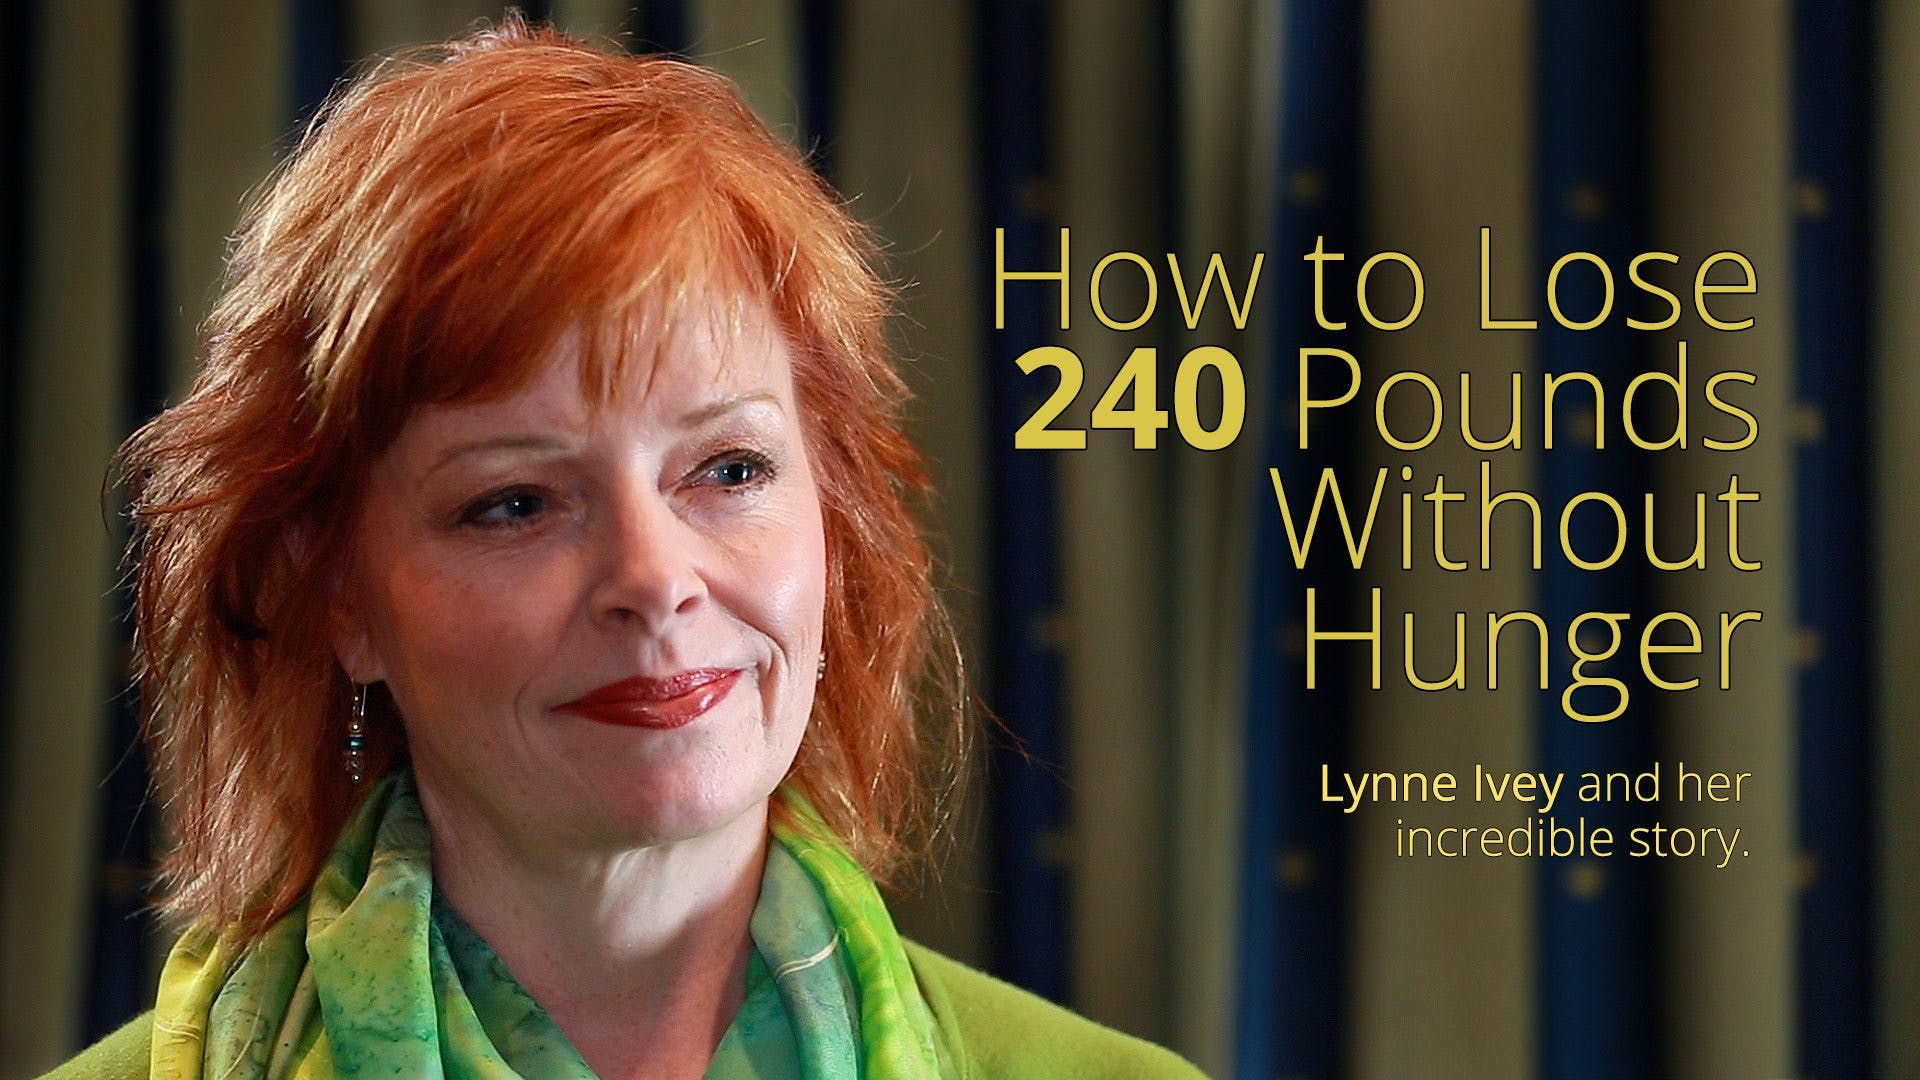 How to Lose 240 Pounds Without Hunger – Lynne Ivey